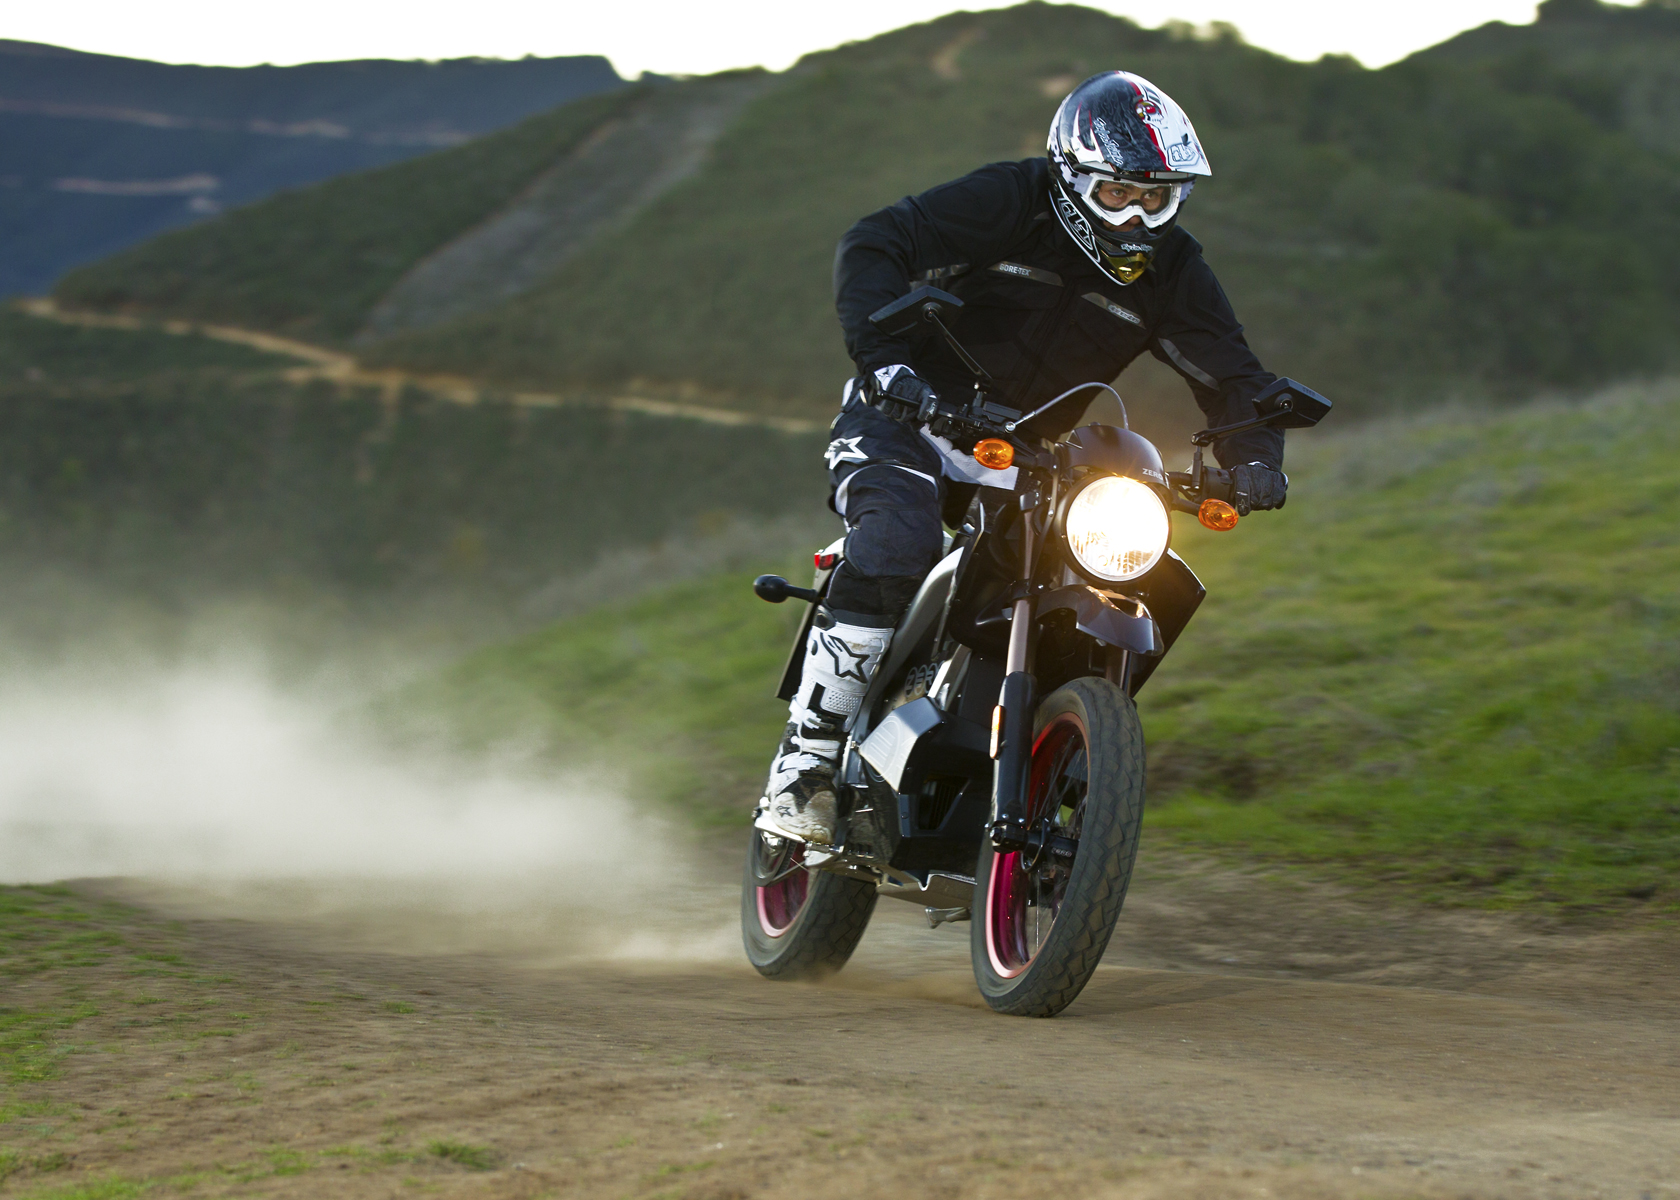 '.2011 Zero DS Electric Motorcycle: Charging Down a Dirt Road.'